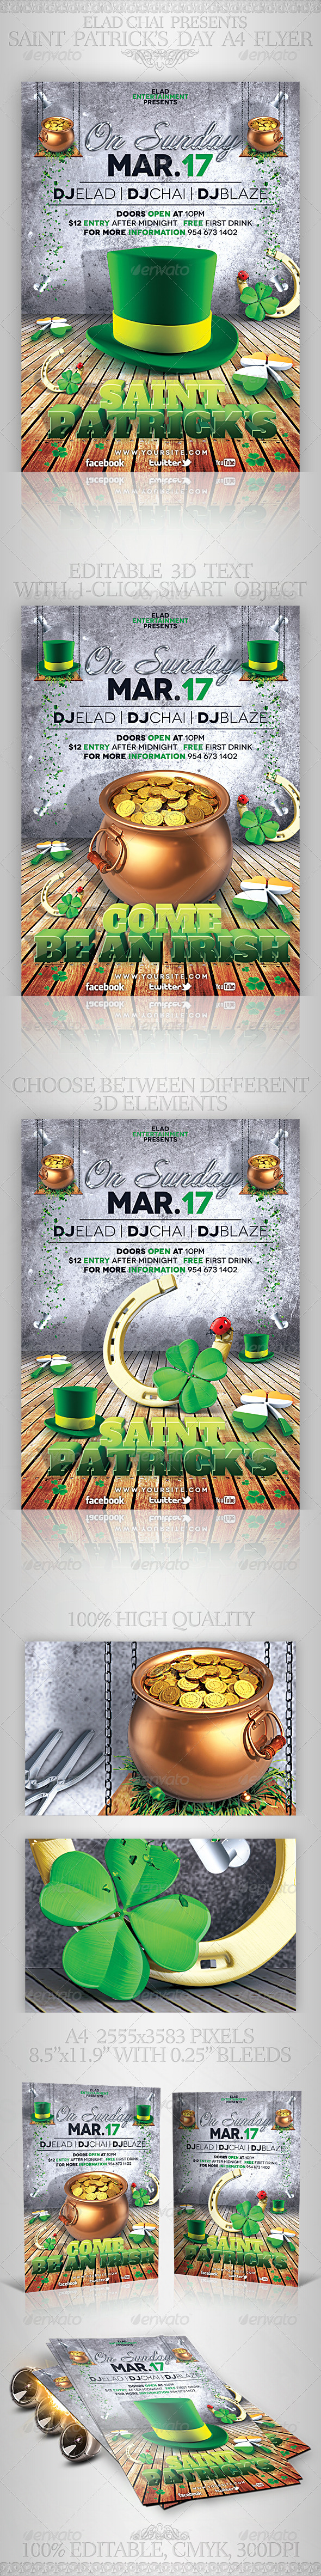 2014 St. Patrick's Day A4 Flyer Poster Template - Events Flyers